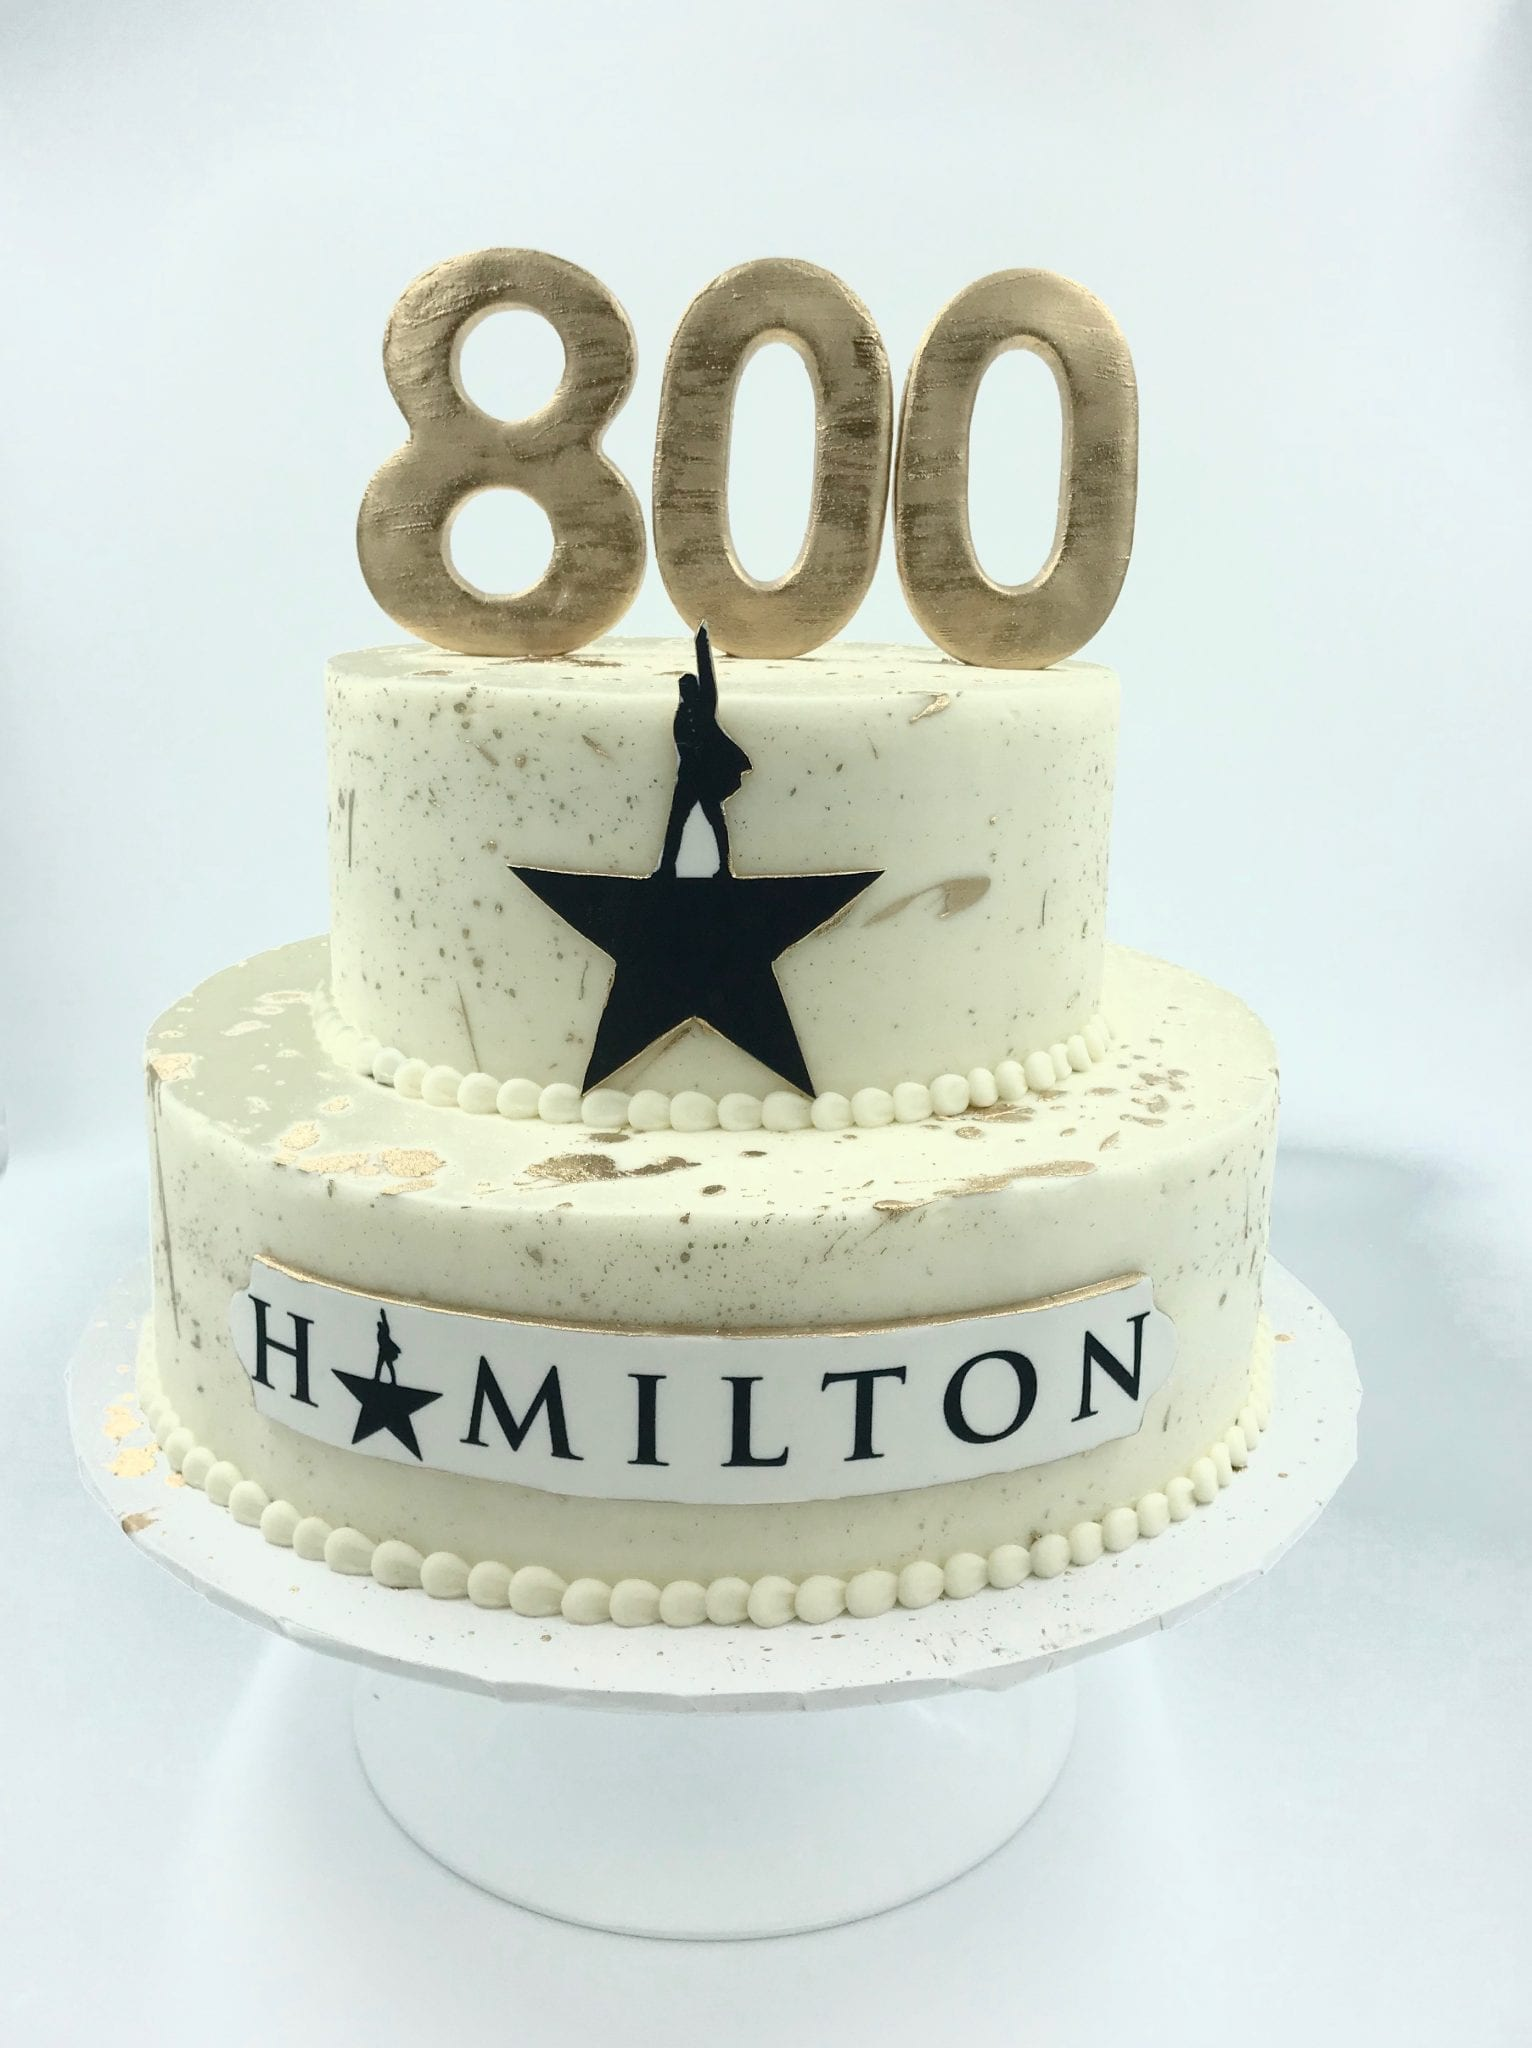 Hamilton Cake | 3 Sweet Girls Cakery